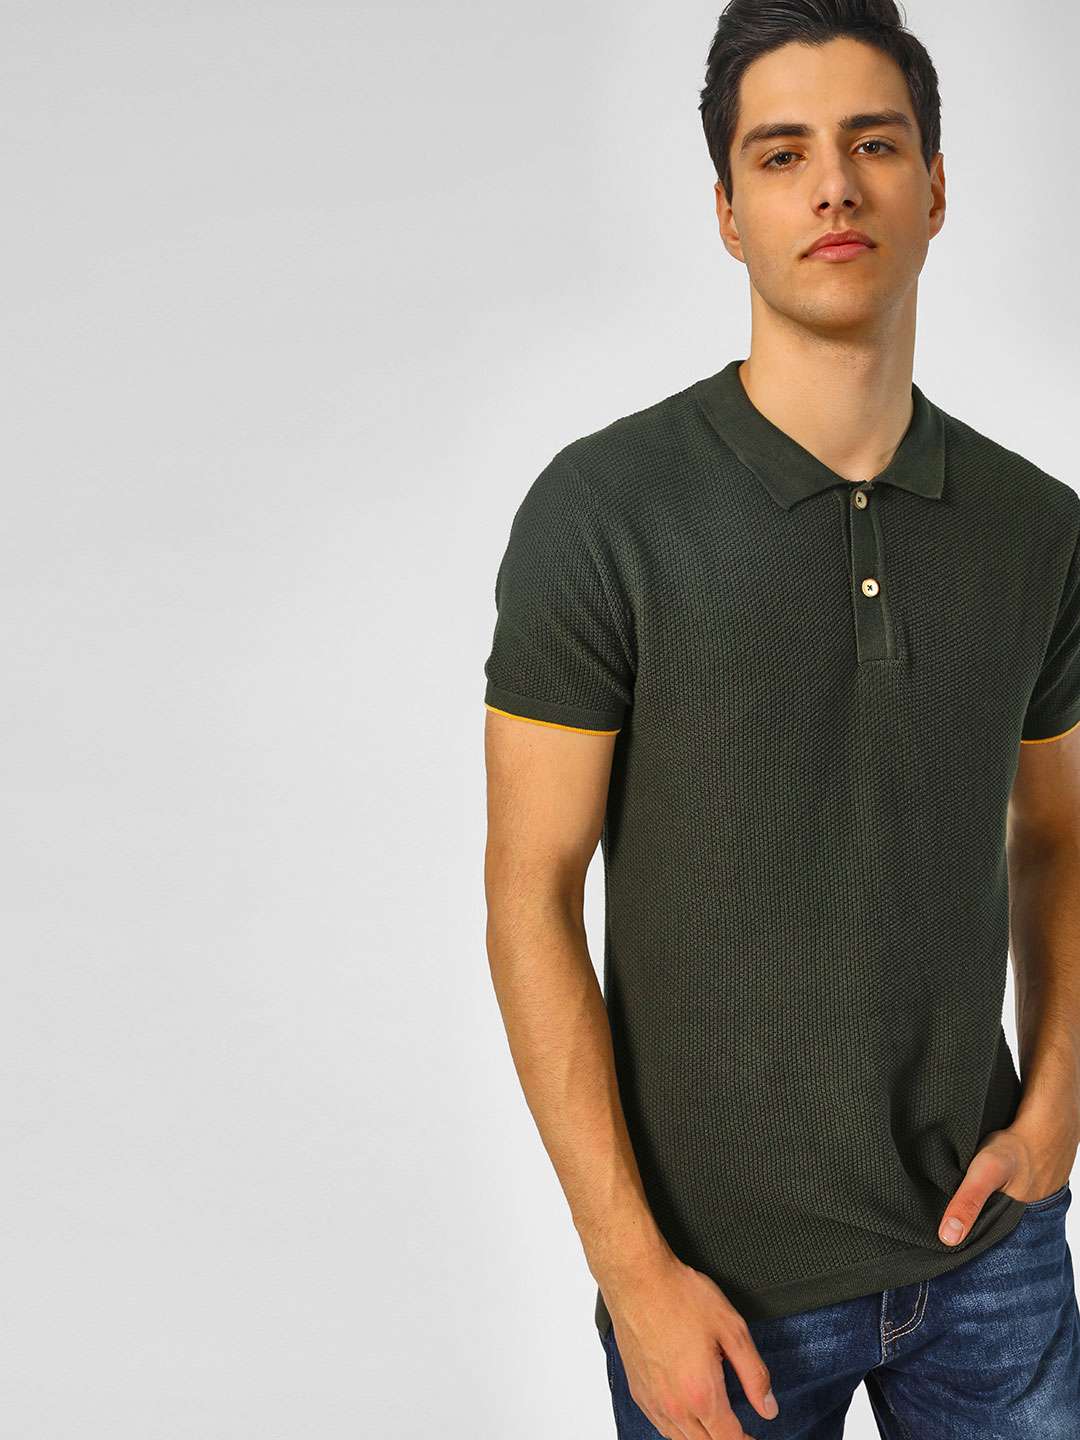 SCULLERS Olive All Over Knitted Polo T-Shirt 1